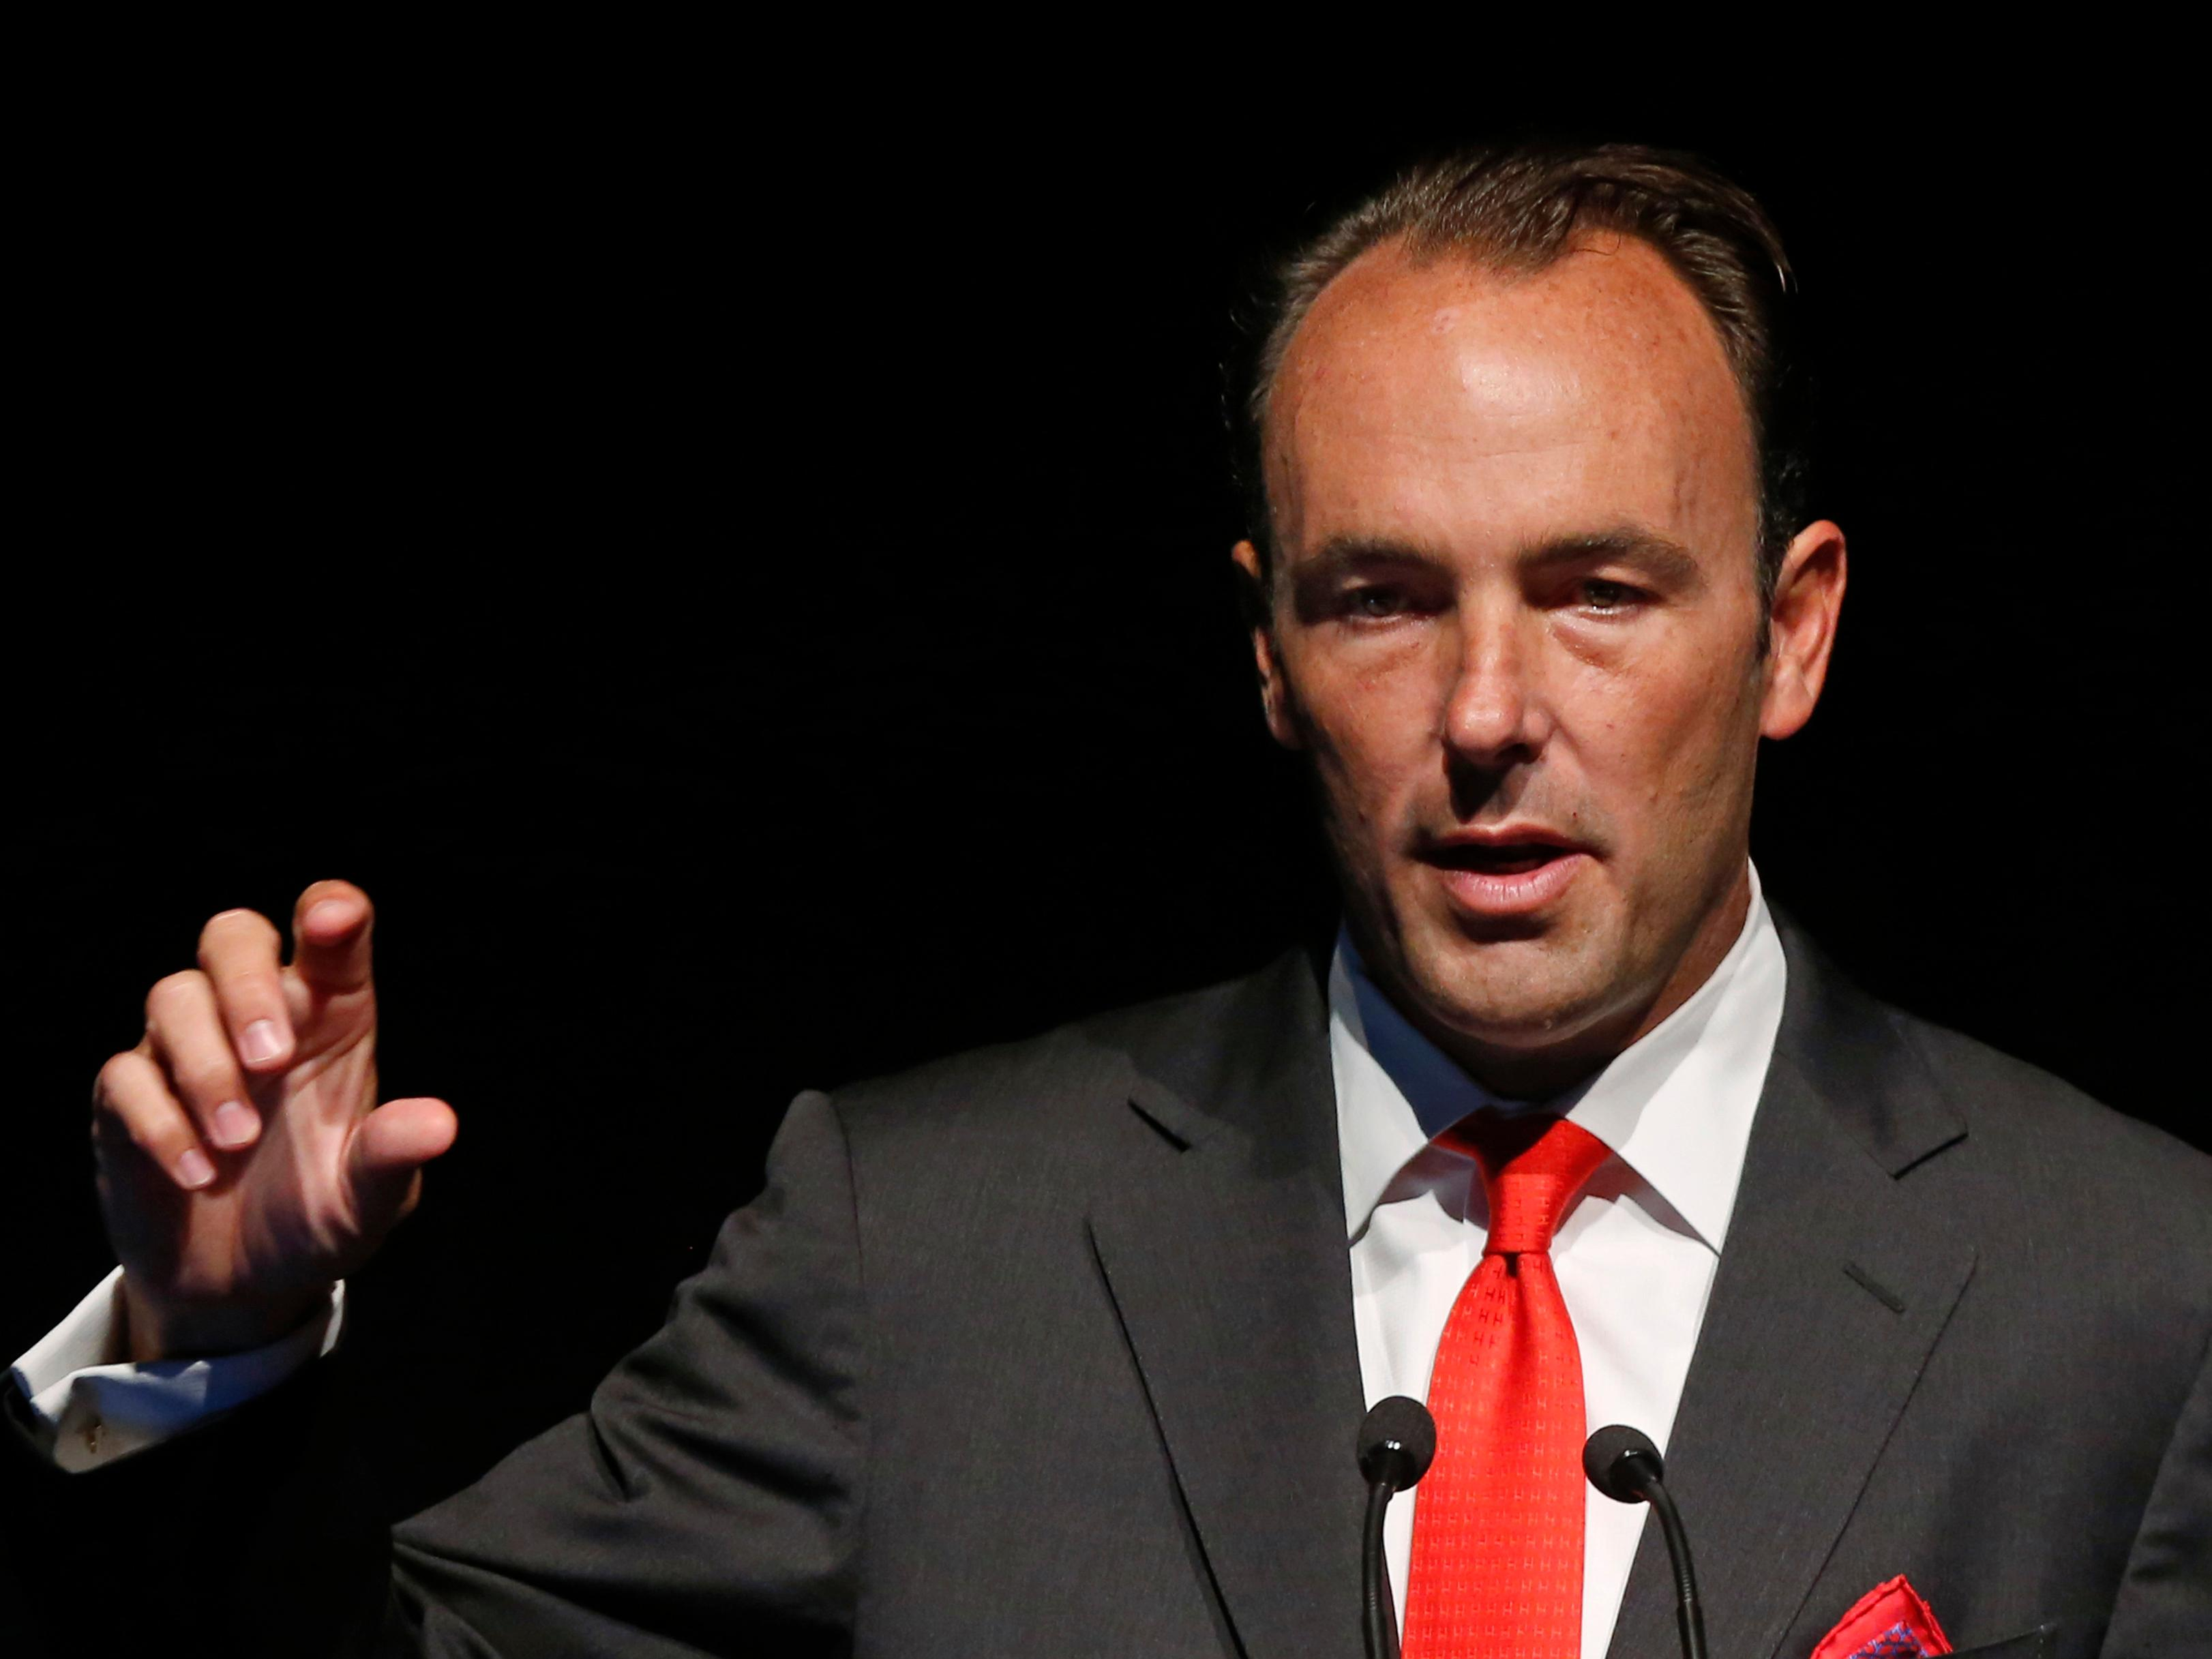 Kyle Bass is going to war with his latest short target